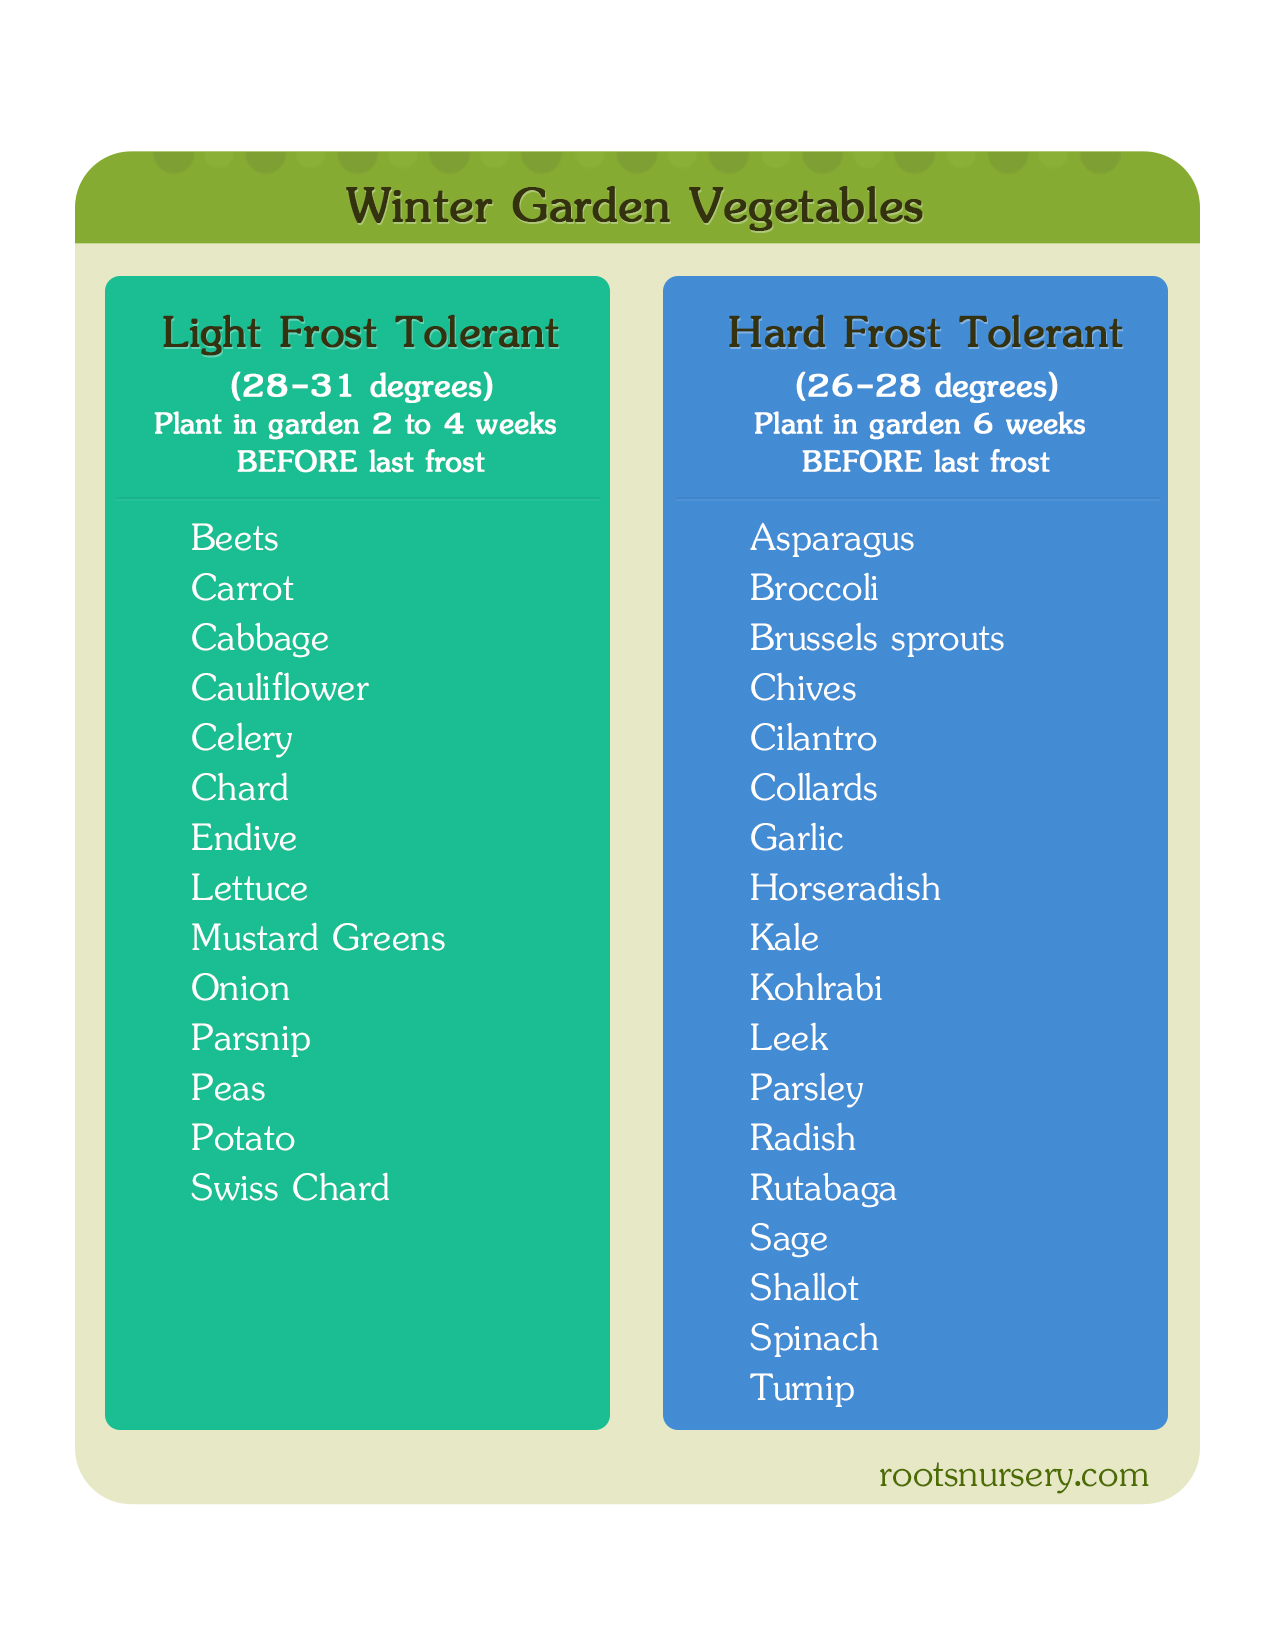 Winter Garden: Cold Hardy Winter Vegetables